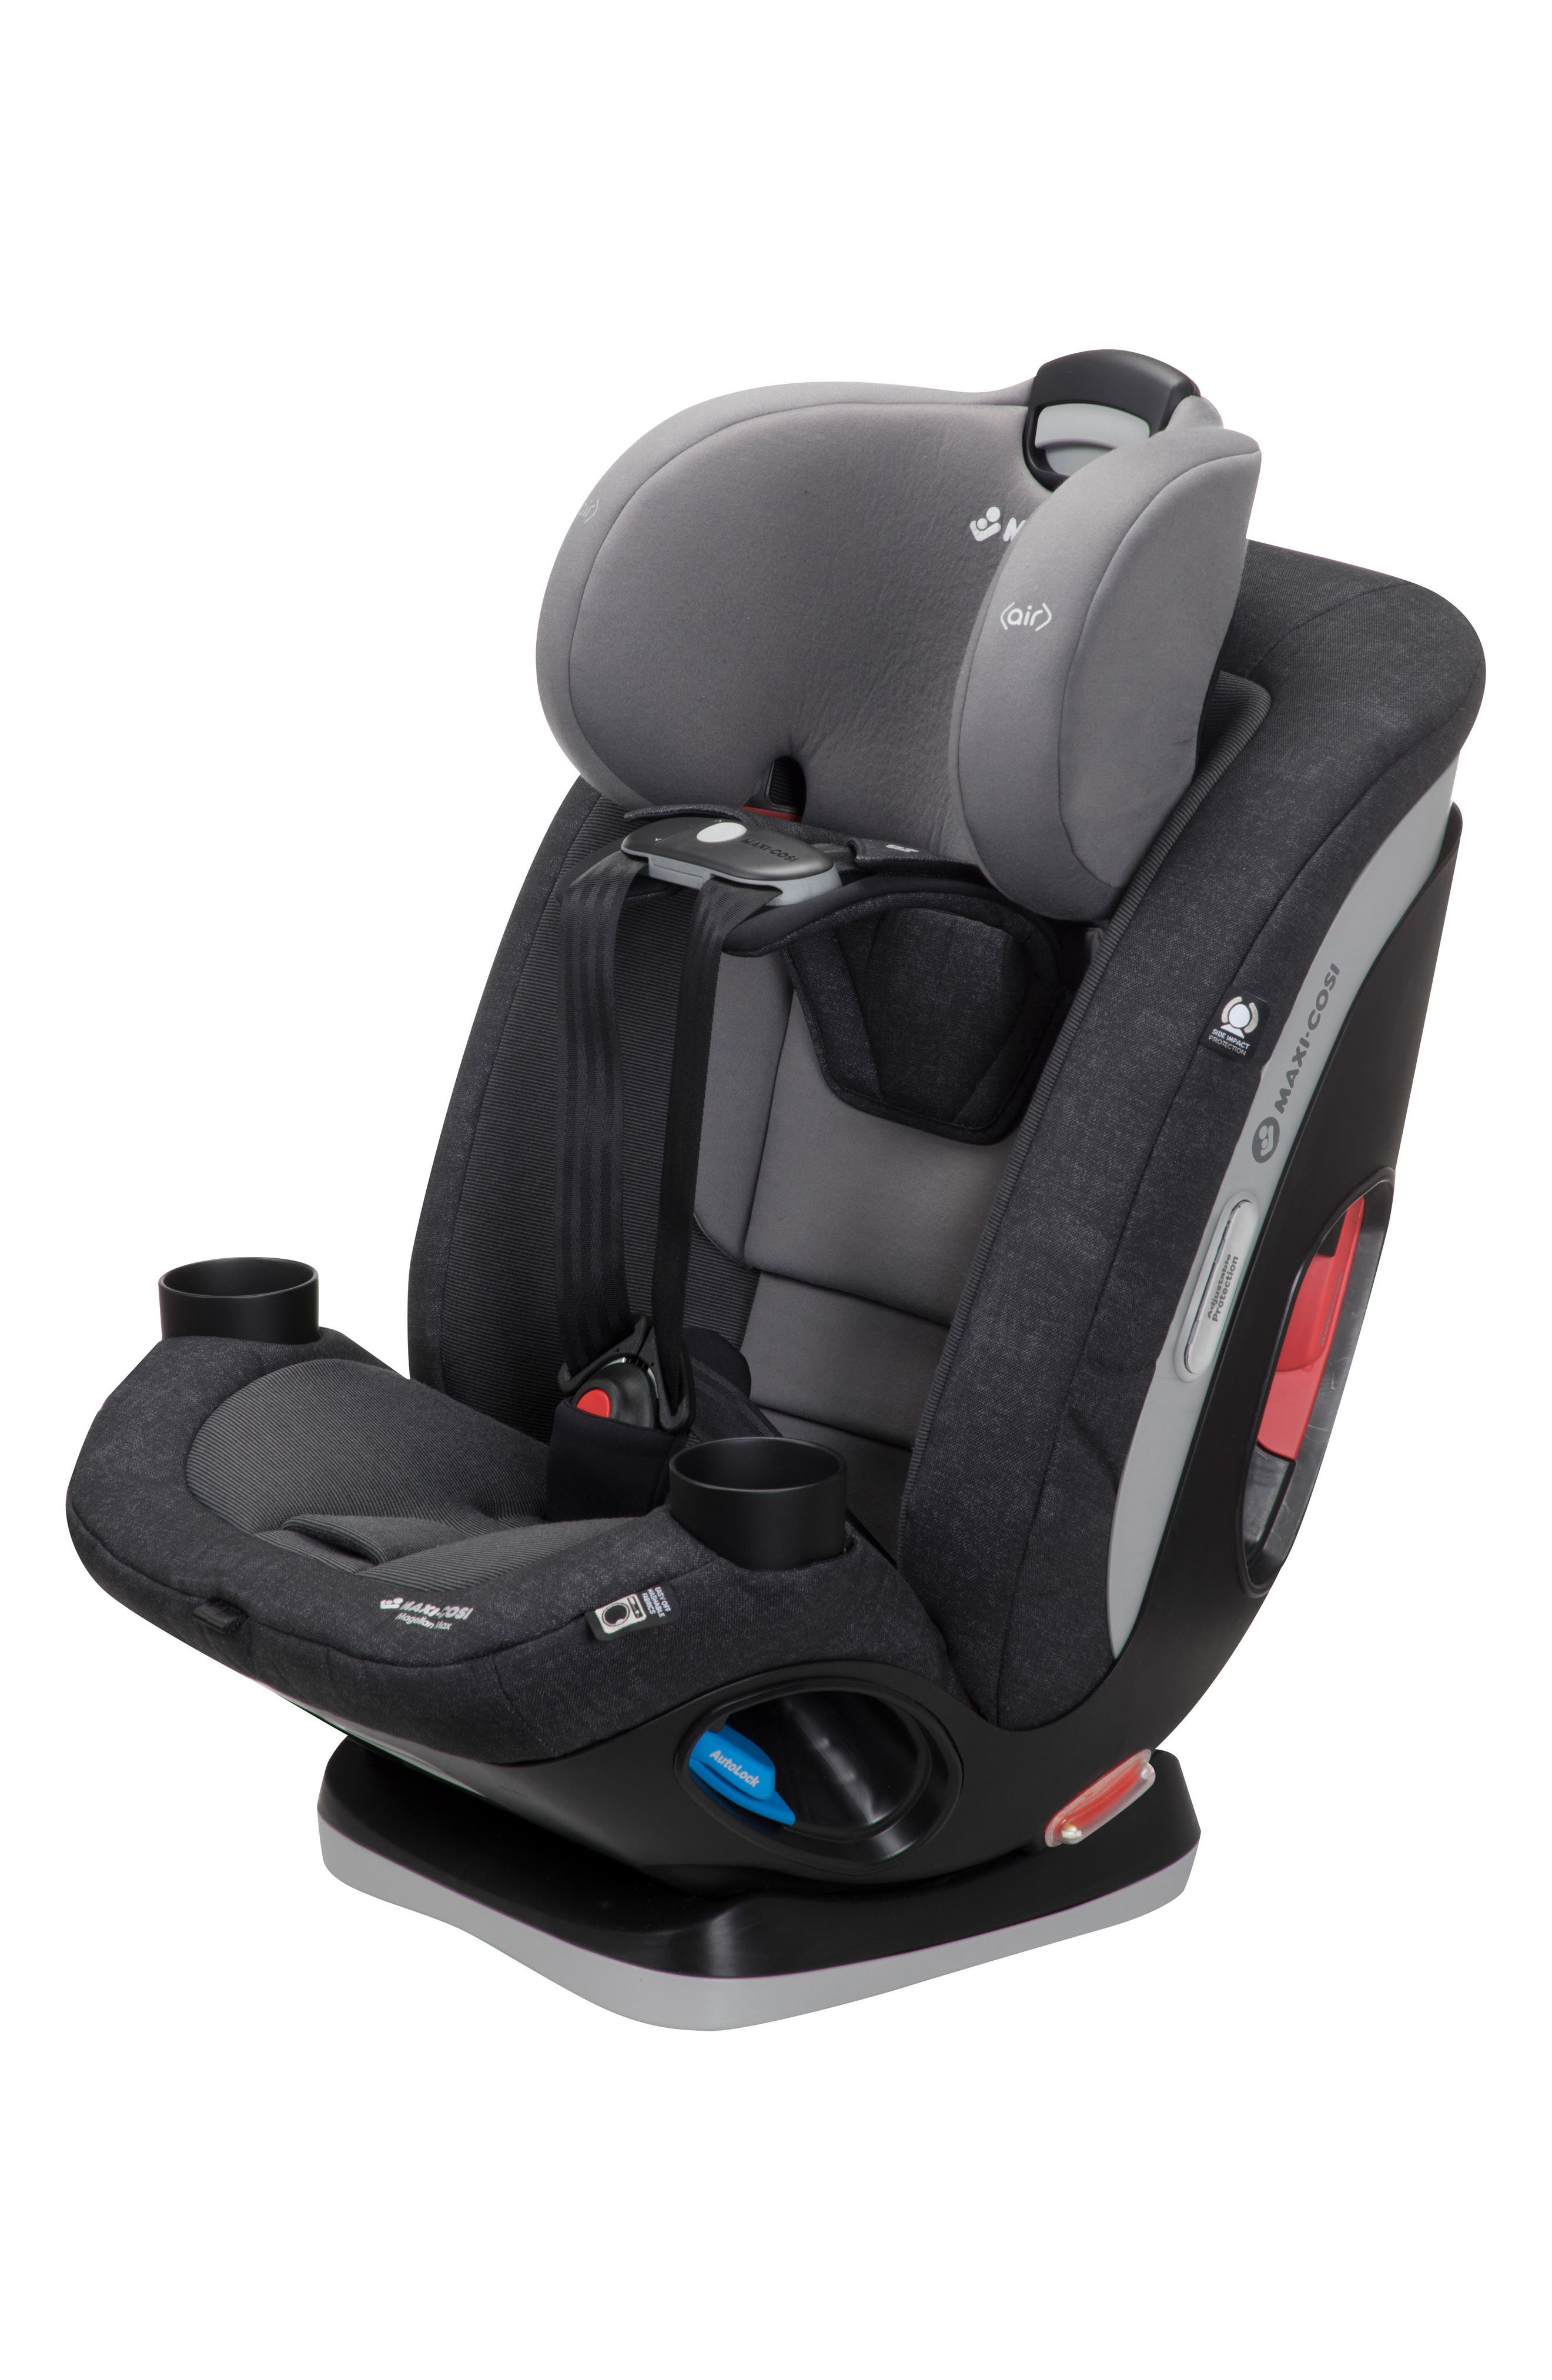 Magellan Max 2018 5-in-1 Convertible Car Seat,                             Alternate thumbnail 8, color,                             NOMAD BLACK